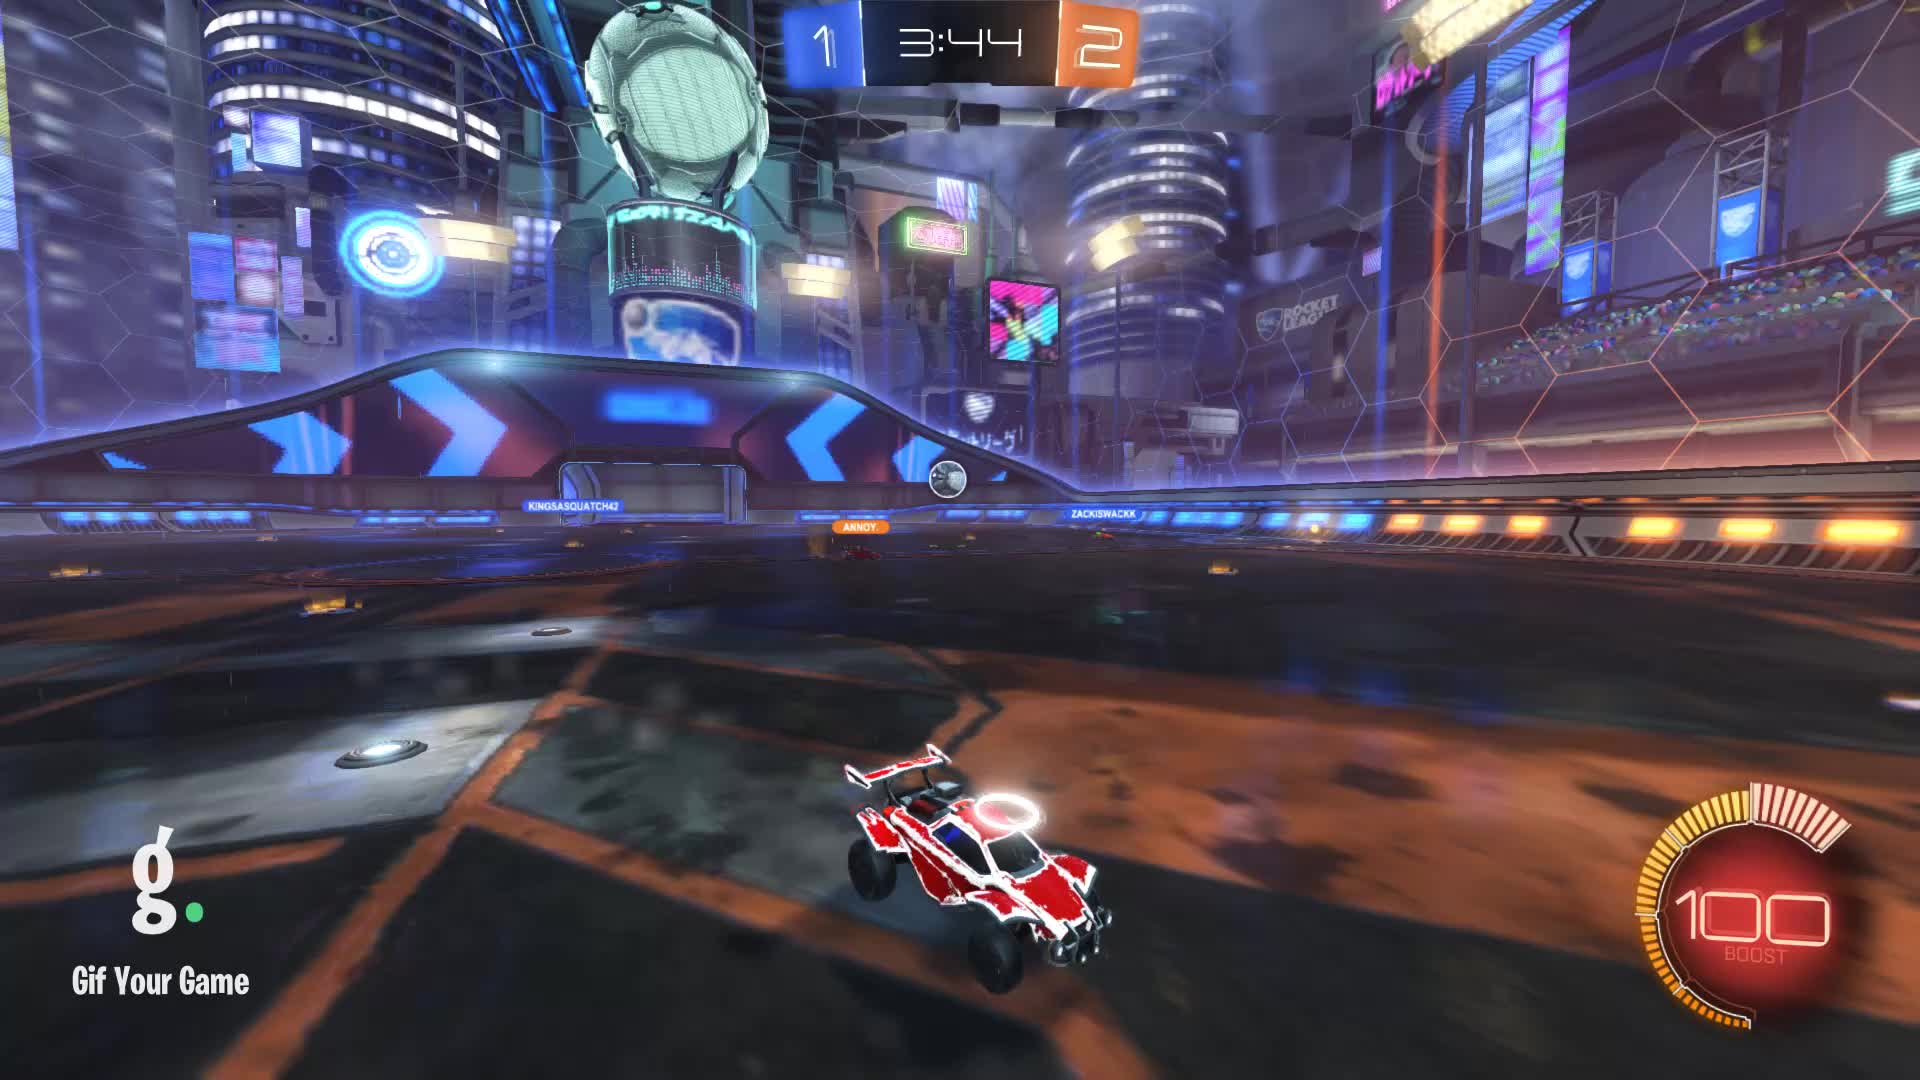 Gif Your Game, GifYourGame, Goal, Rocket League, RocketLeague, lilmoist., Goal 4: Annoy. GIFs